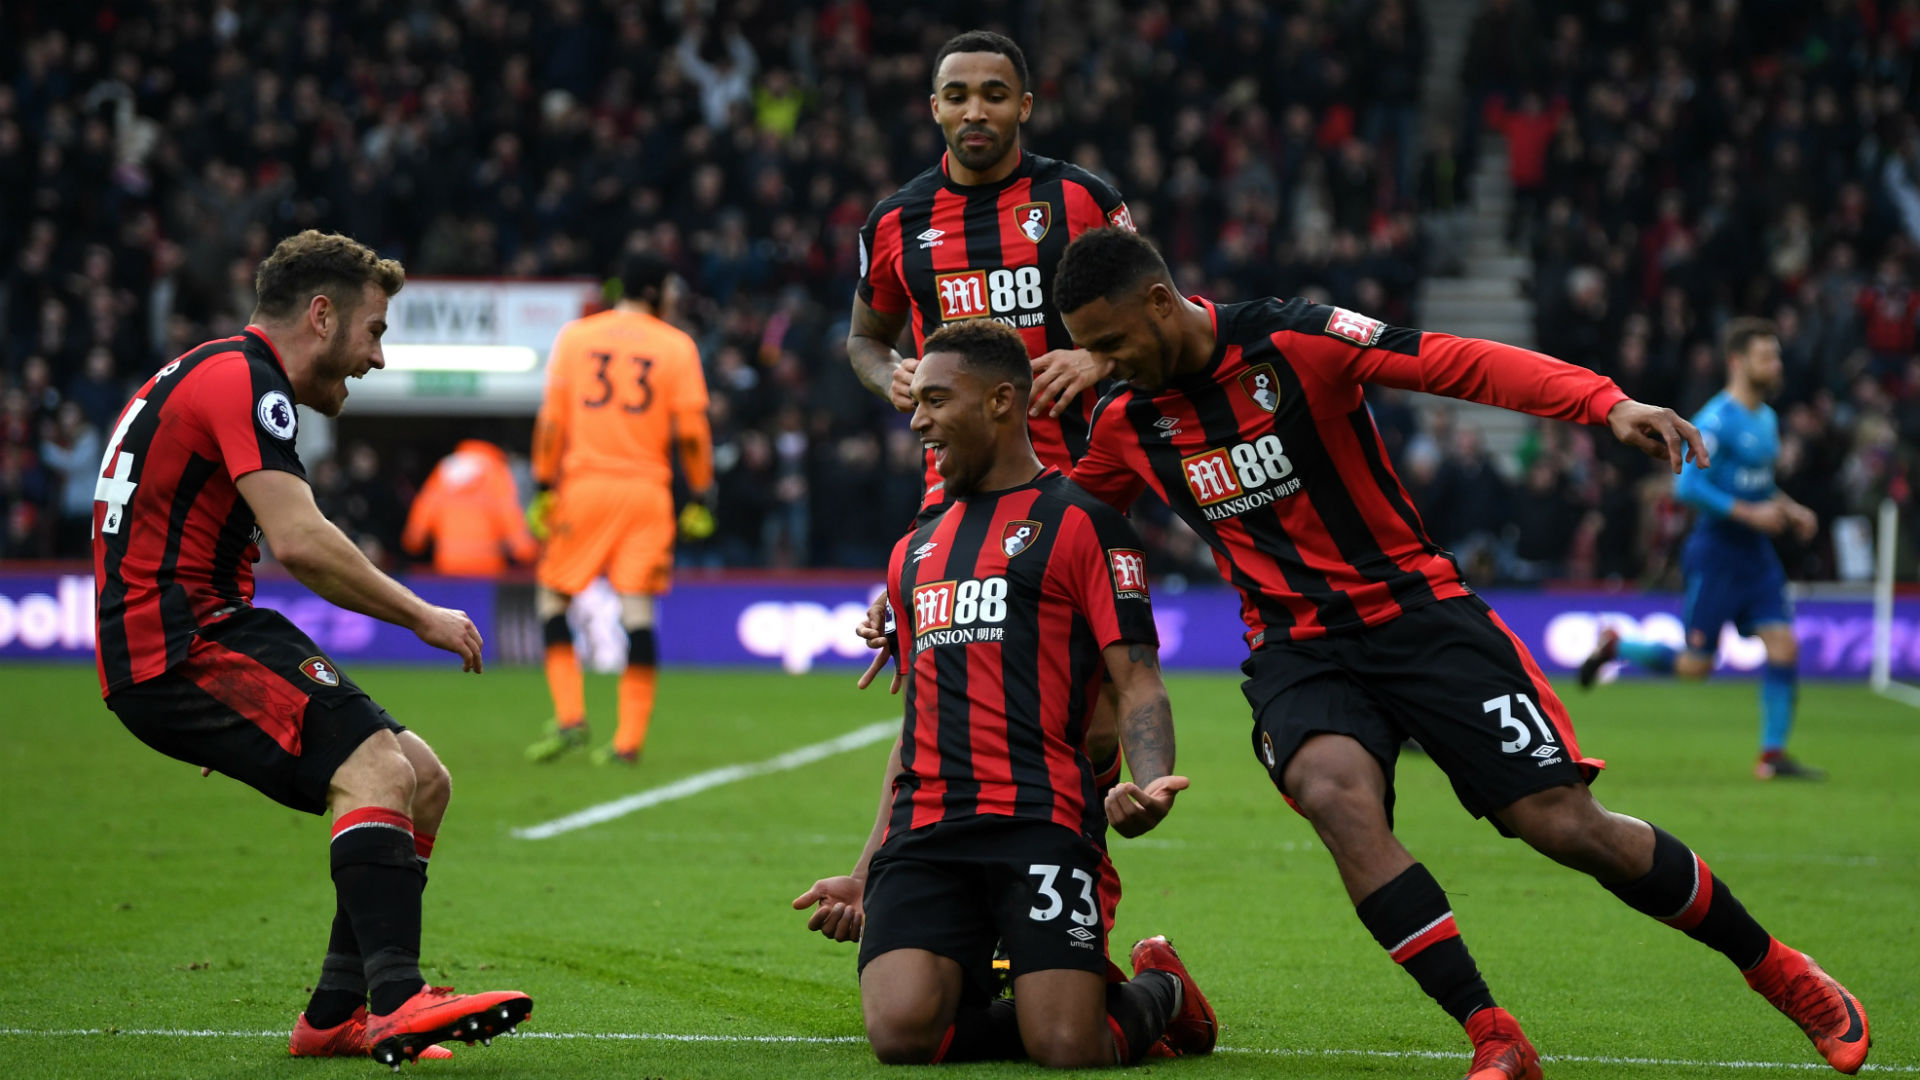 Jordan Ibe Bournemouth celebrate vs Arsenal